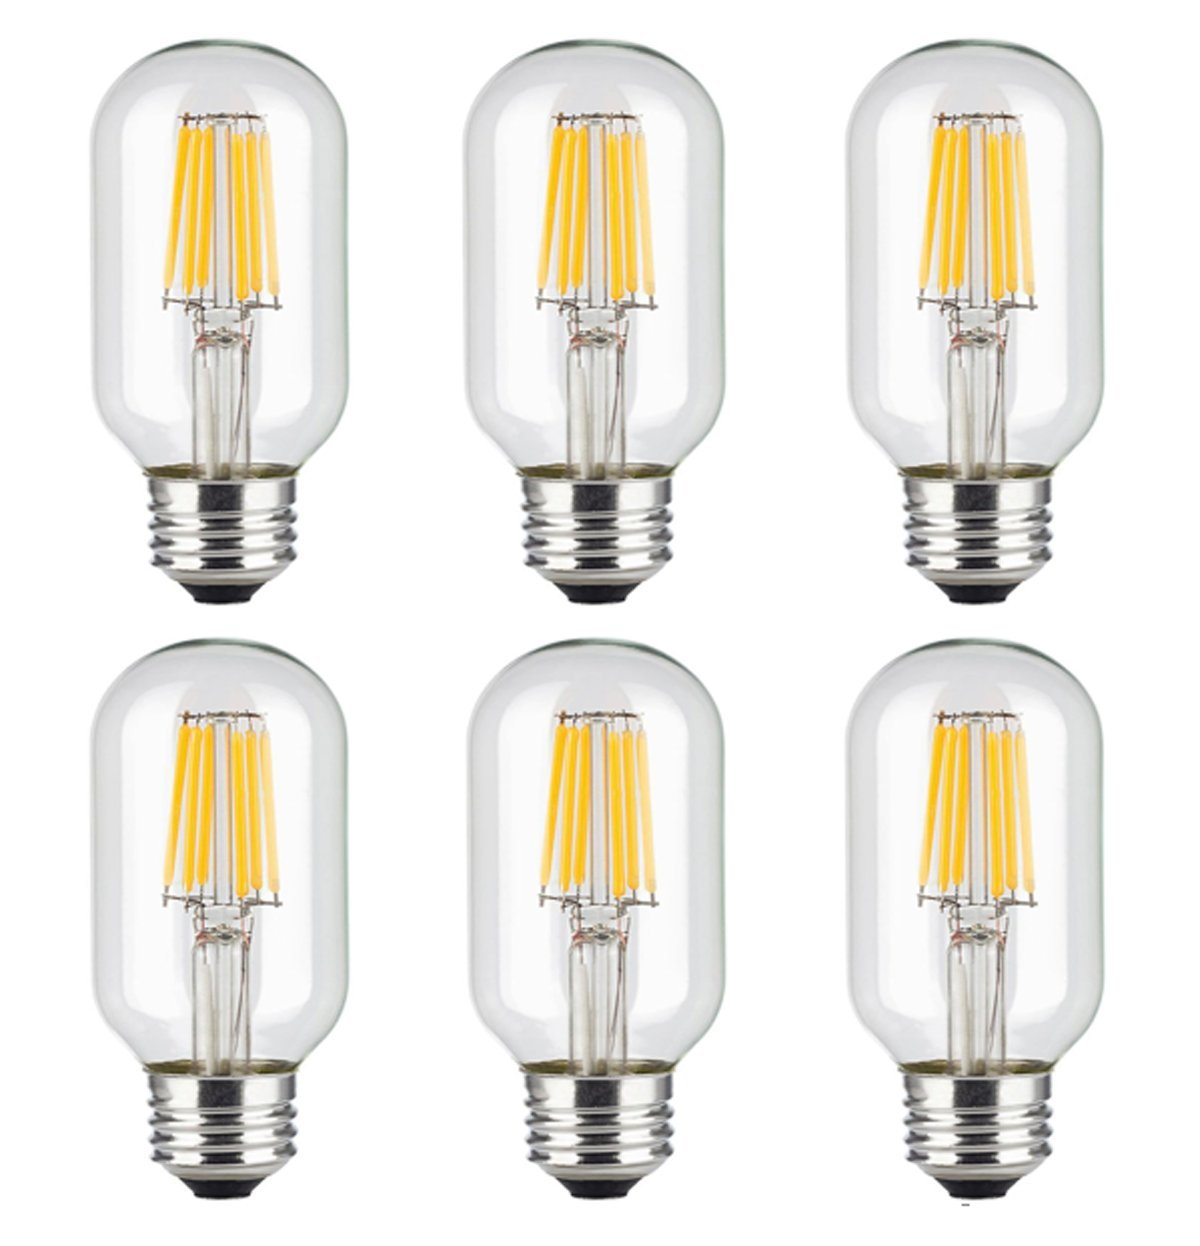 Pack of 6 LED Edison Bulb, KEEDA 6W T45 Vintage Antique Dimmable Bulb Lighting Warm White 2700K, Clear Class